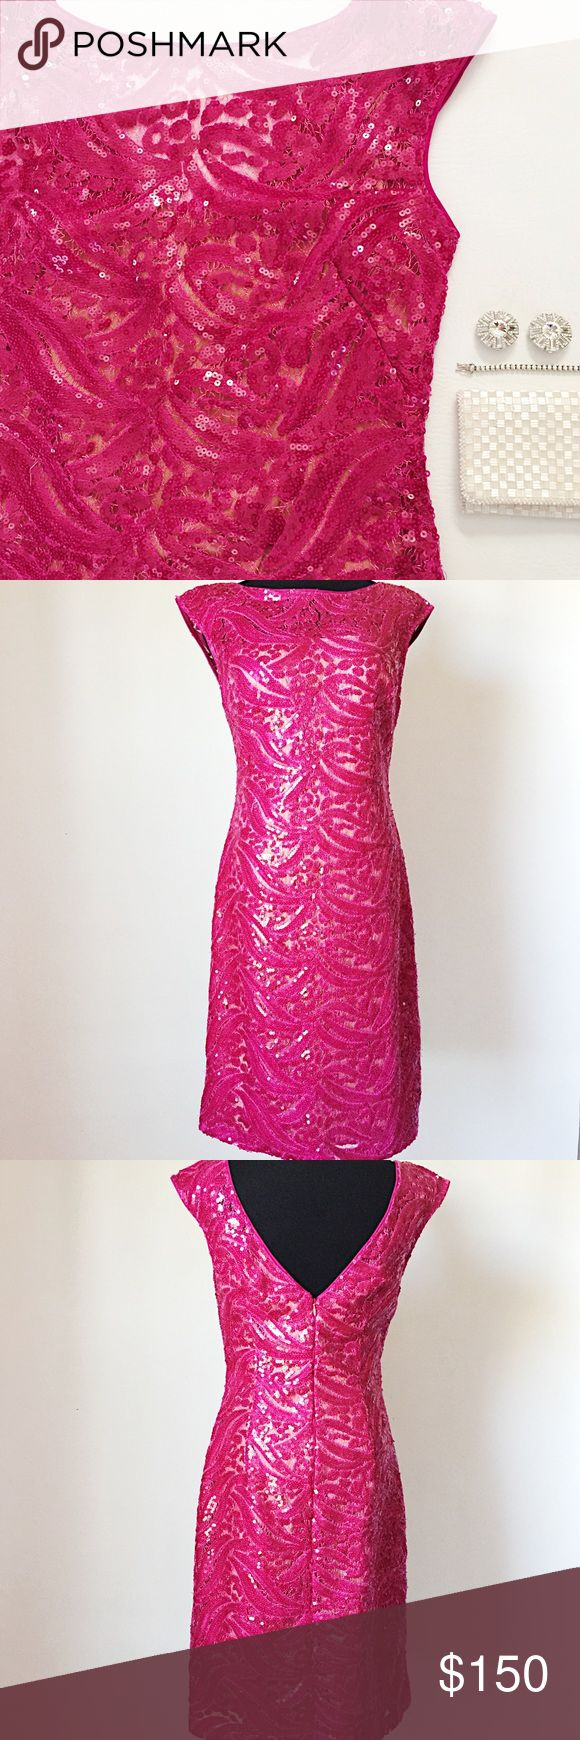 """ML Monique Lhuillier Sequin Sheer Dress ML Monique Lhuillier Sequin Sheer Dress in rasberry featuring delicate floral sequins.  Nude slip attached and included.  V back with hidden zipper.  Gorgeous color and amazing detail!  NWT, never worn!  A few loose threads, no missing sequins or damage.  •  BUNDLE with accessories to SAVE and GET THE LOOK!  •   Measurements laying flat: Armpit to armpit: 16"""" Waist (across): 14""""  Hips: 17.25"""" Total length: 37"""" Monique Lhuillier Dresses"""